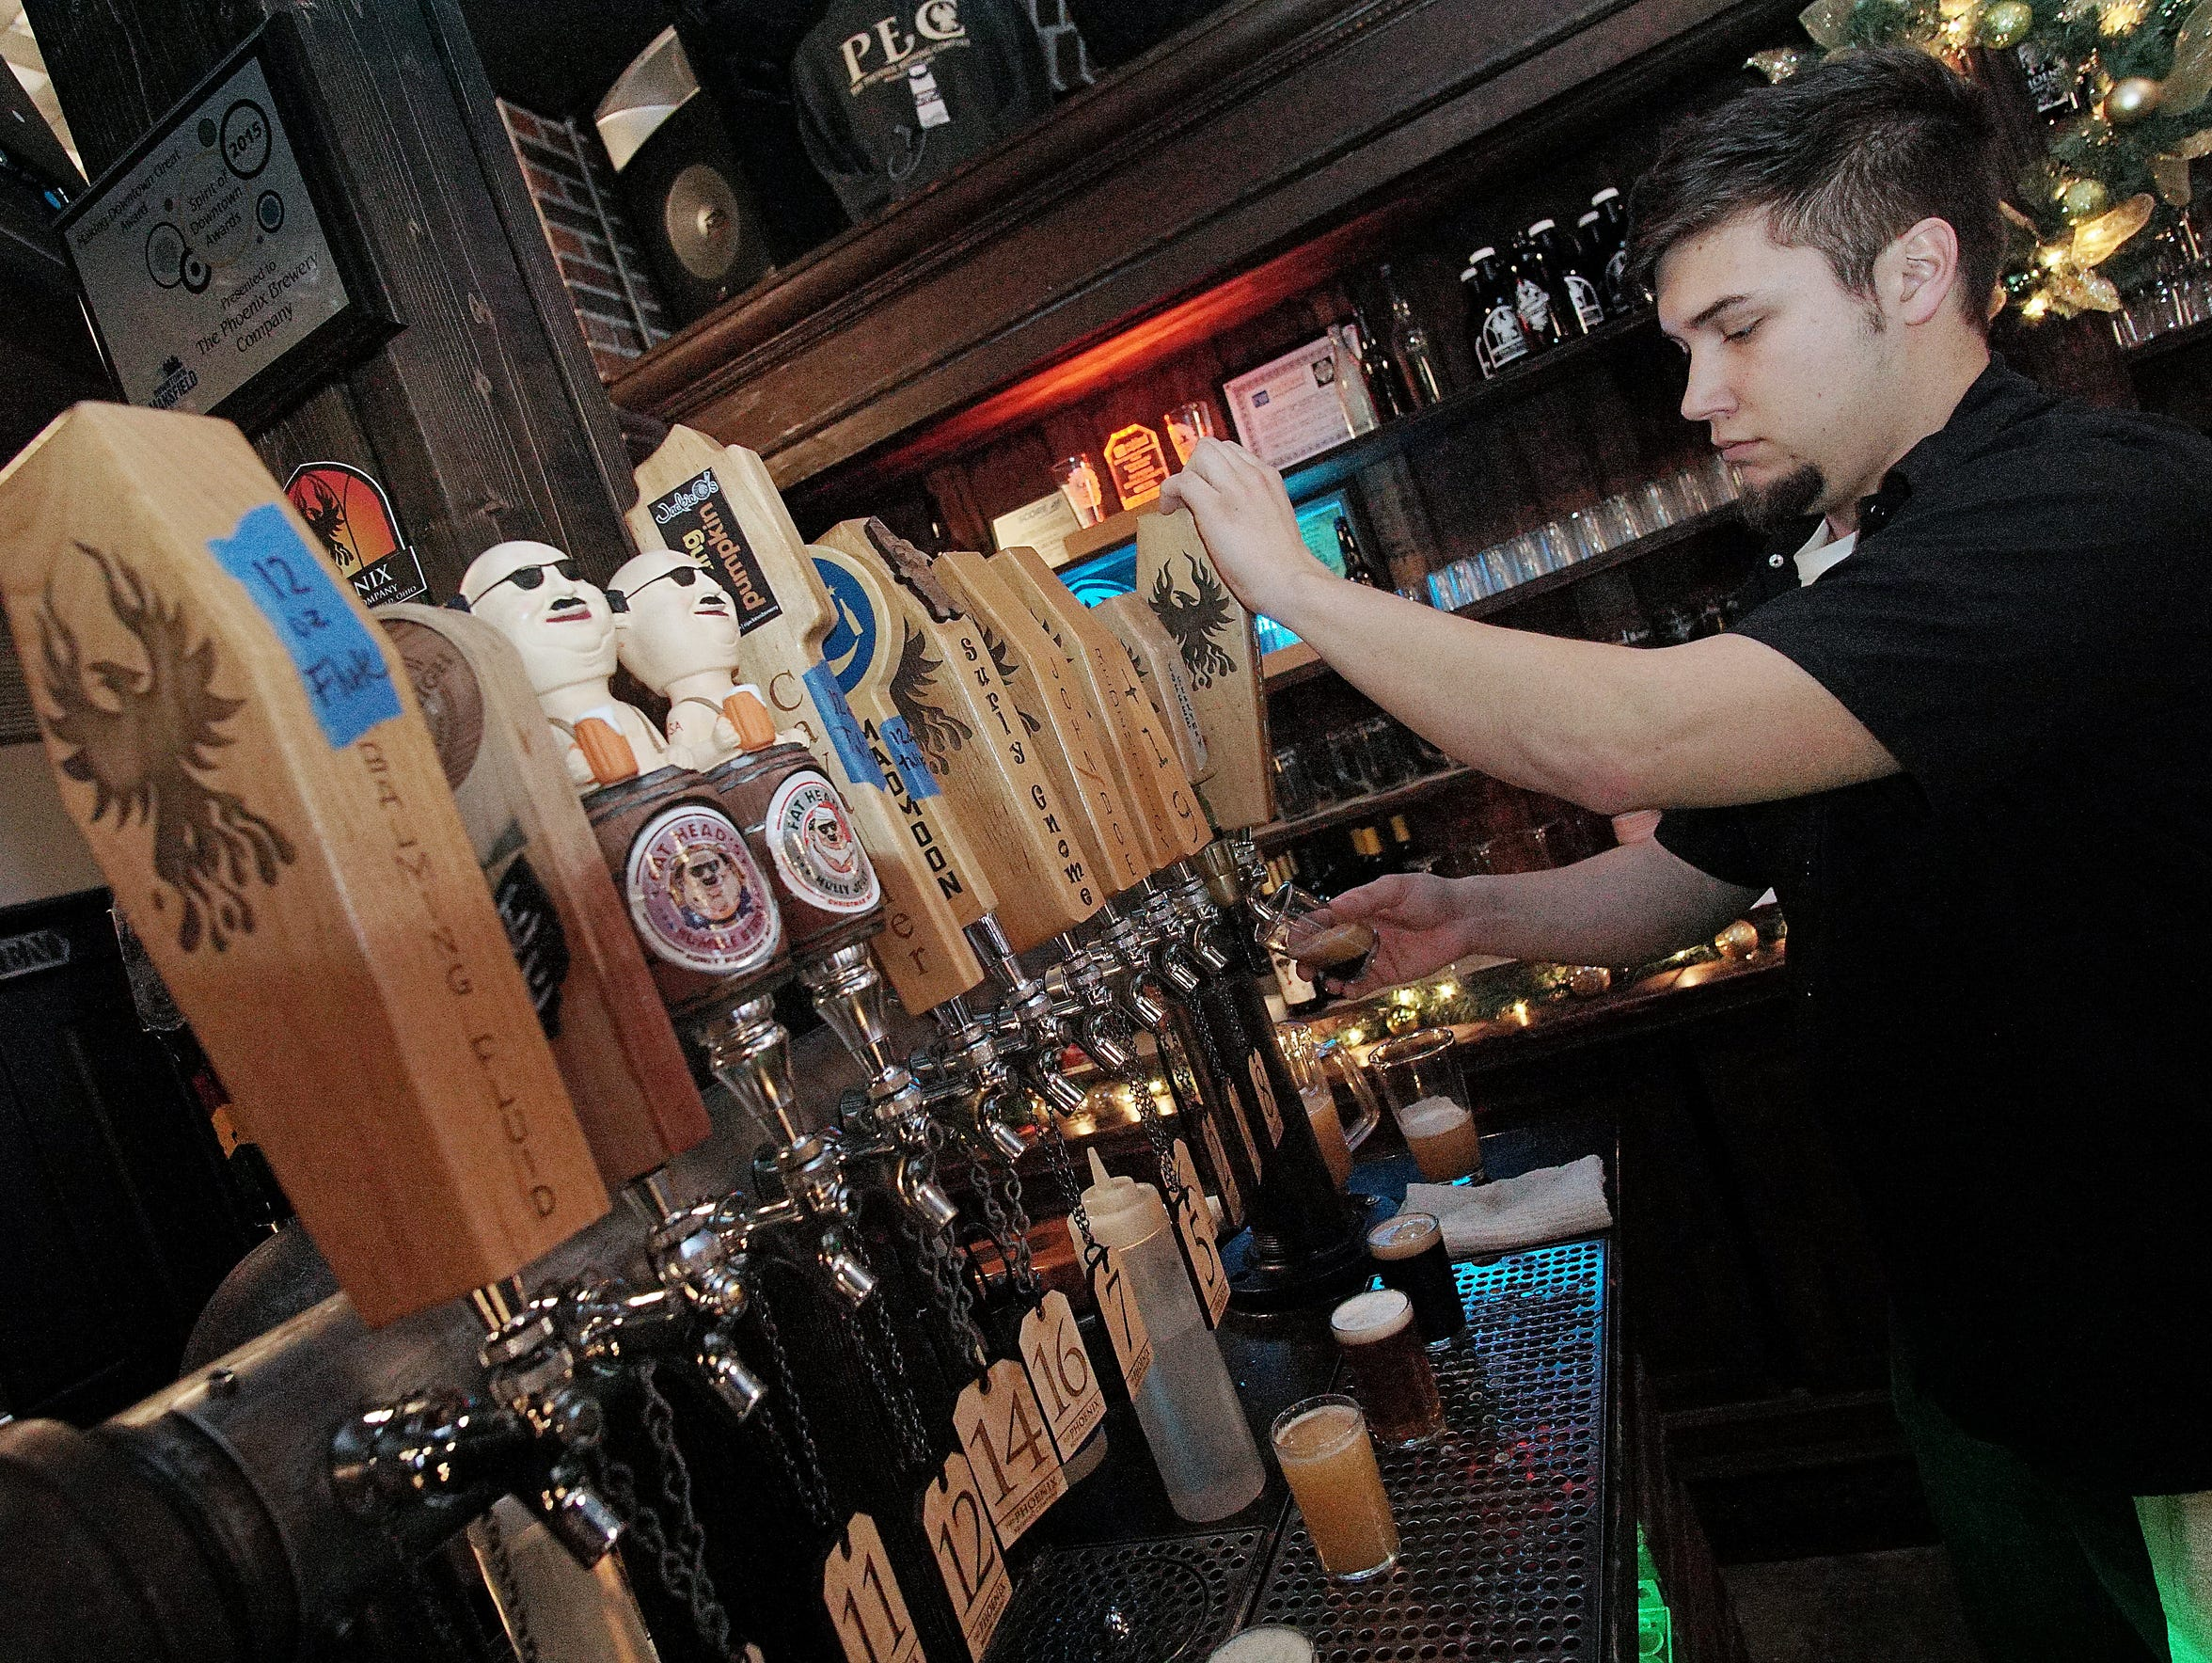 Ian Cardwell pours some beer at the Phoenix Brewing